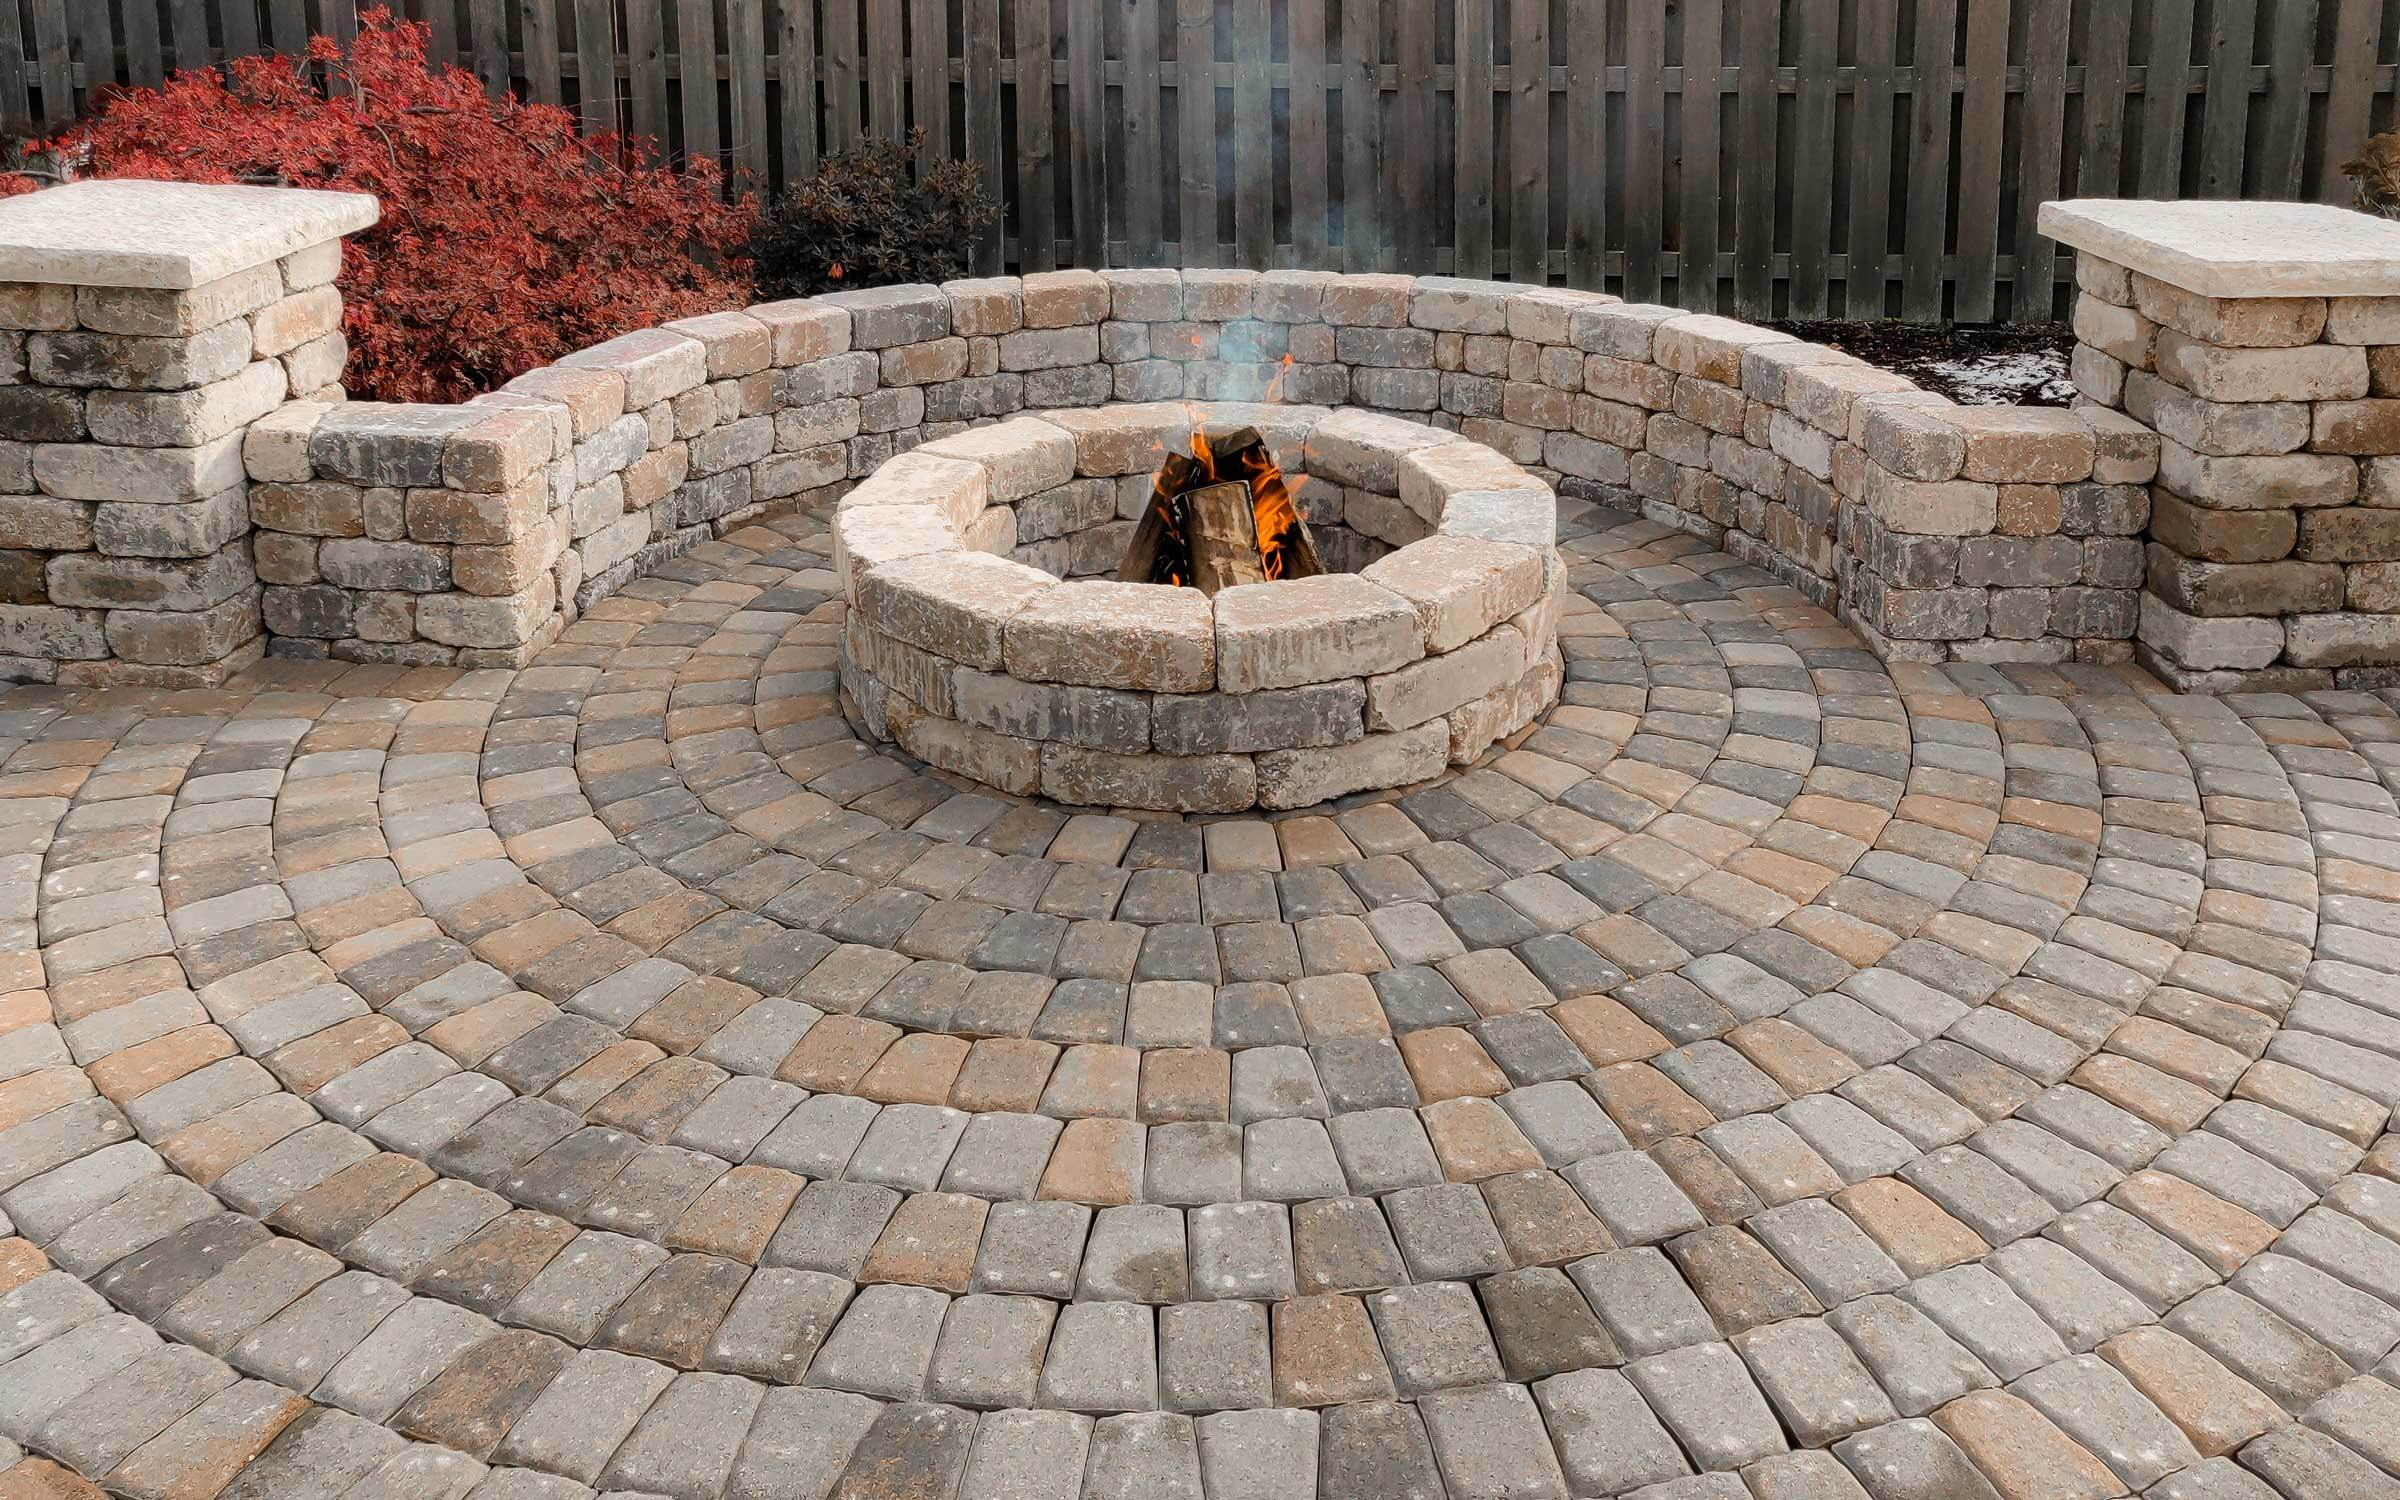 Paver Circle Kit Allows You To Add Interest And Curves Your Patio